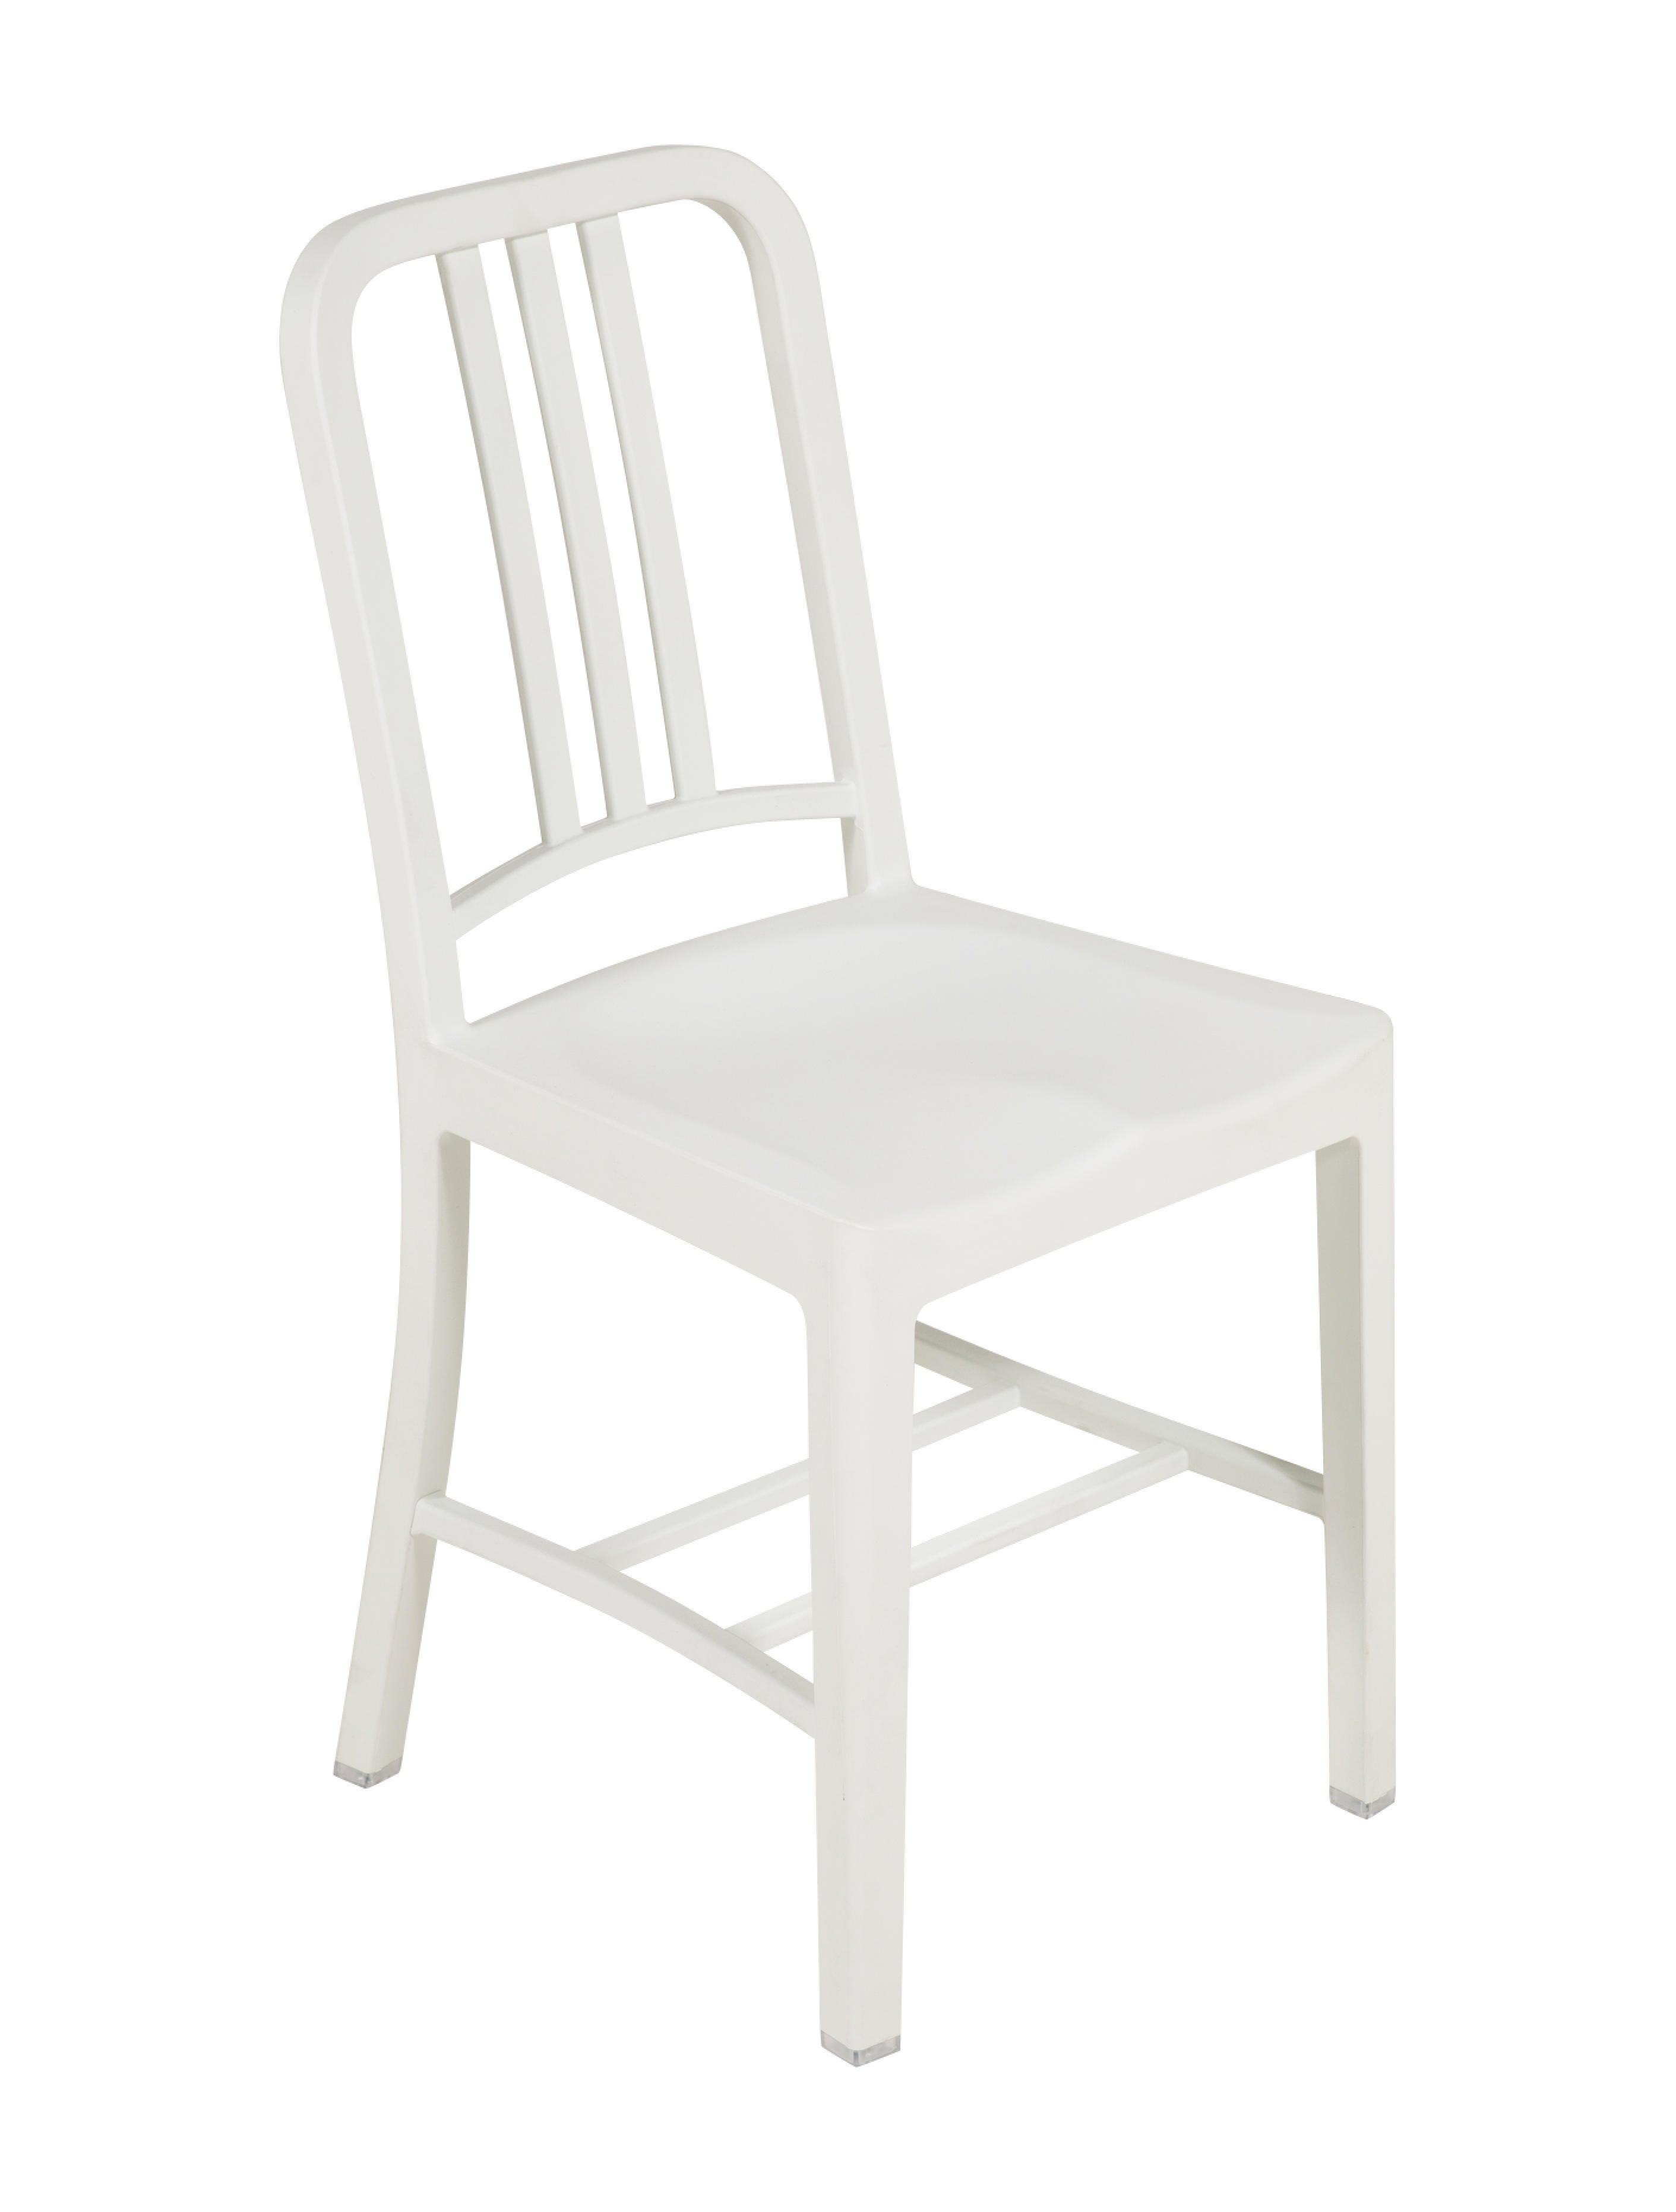 Emeco 1006 Navy Side Chair Furniture Eccom20005 The Realreal